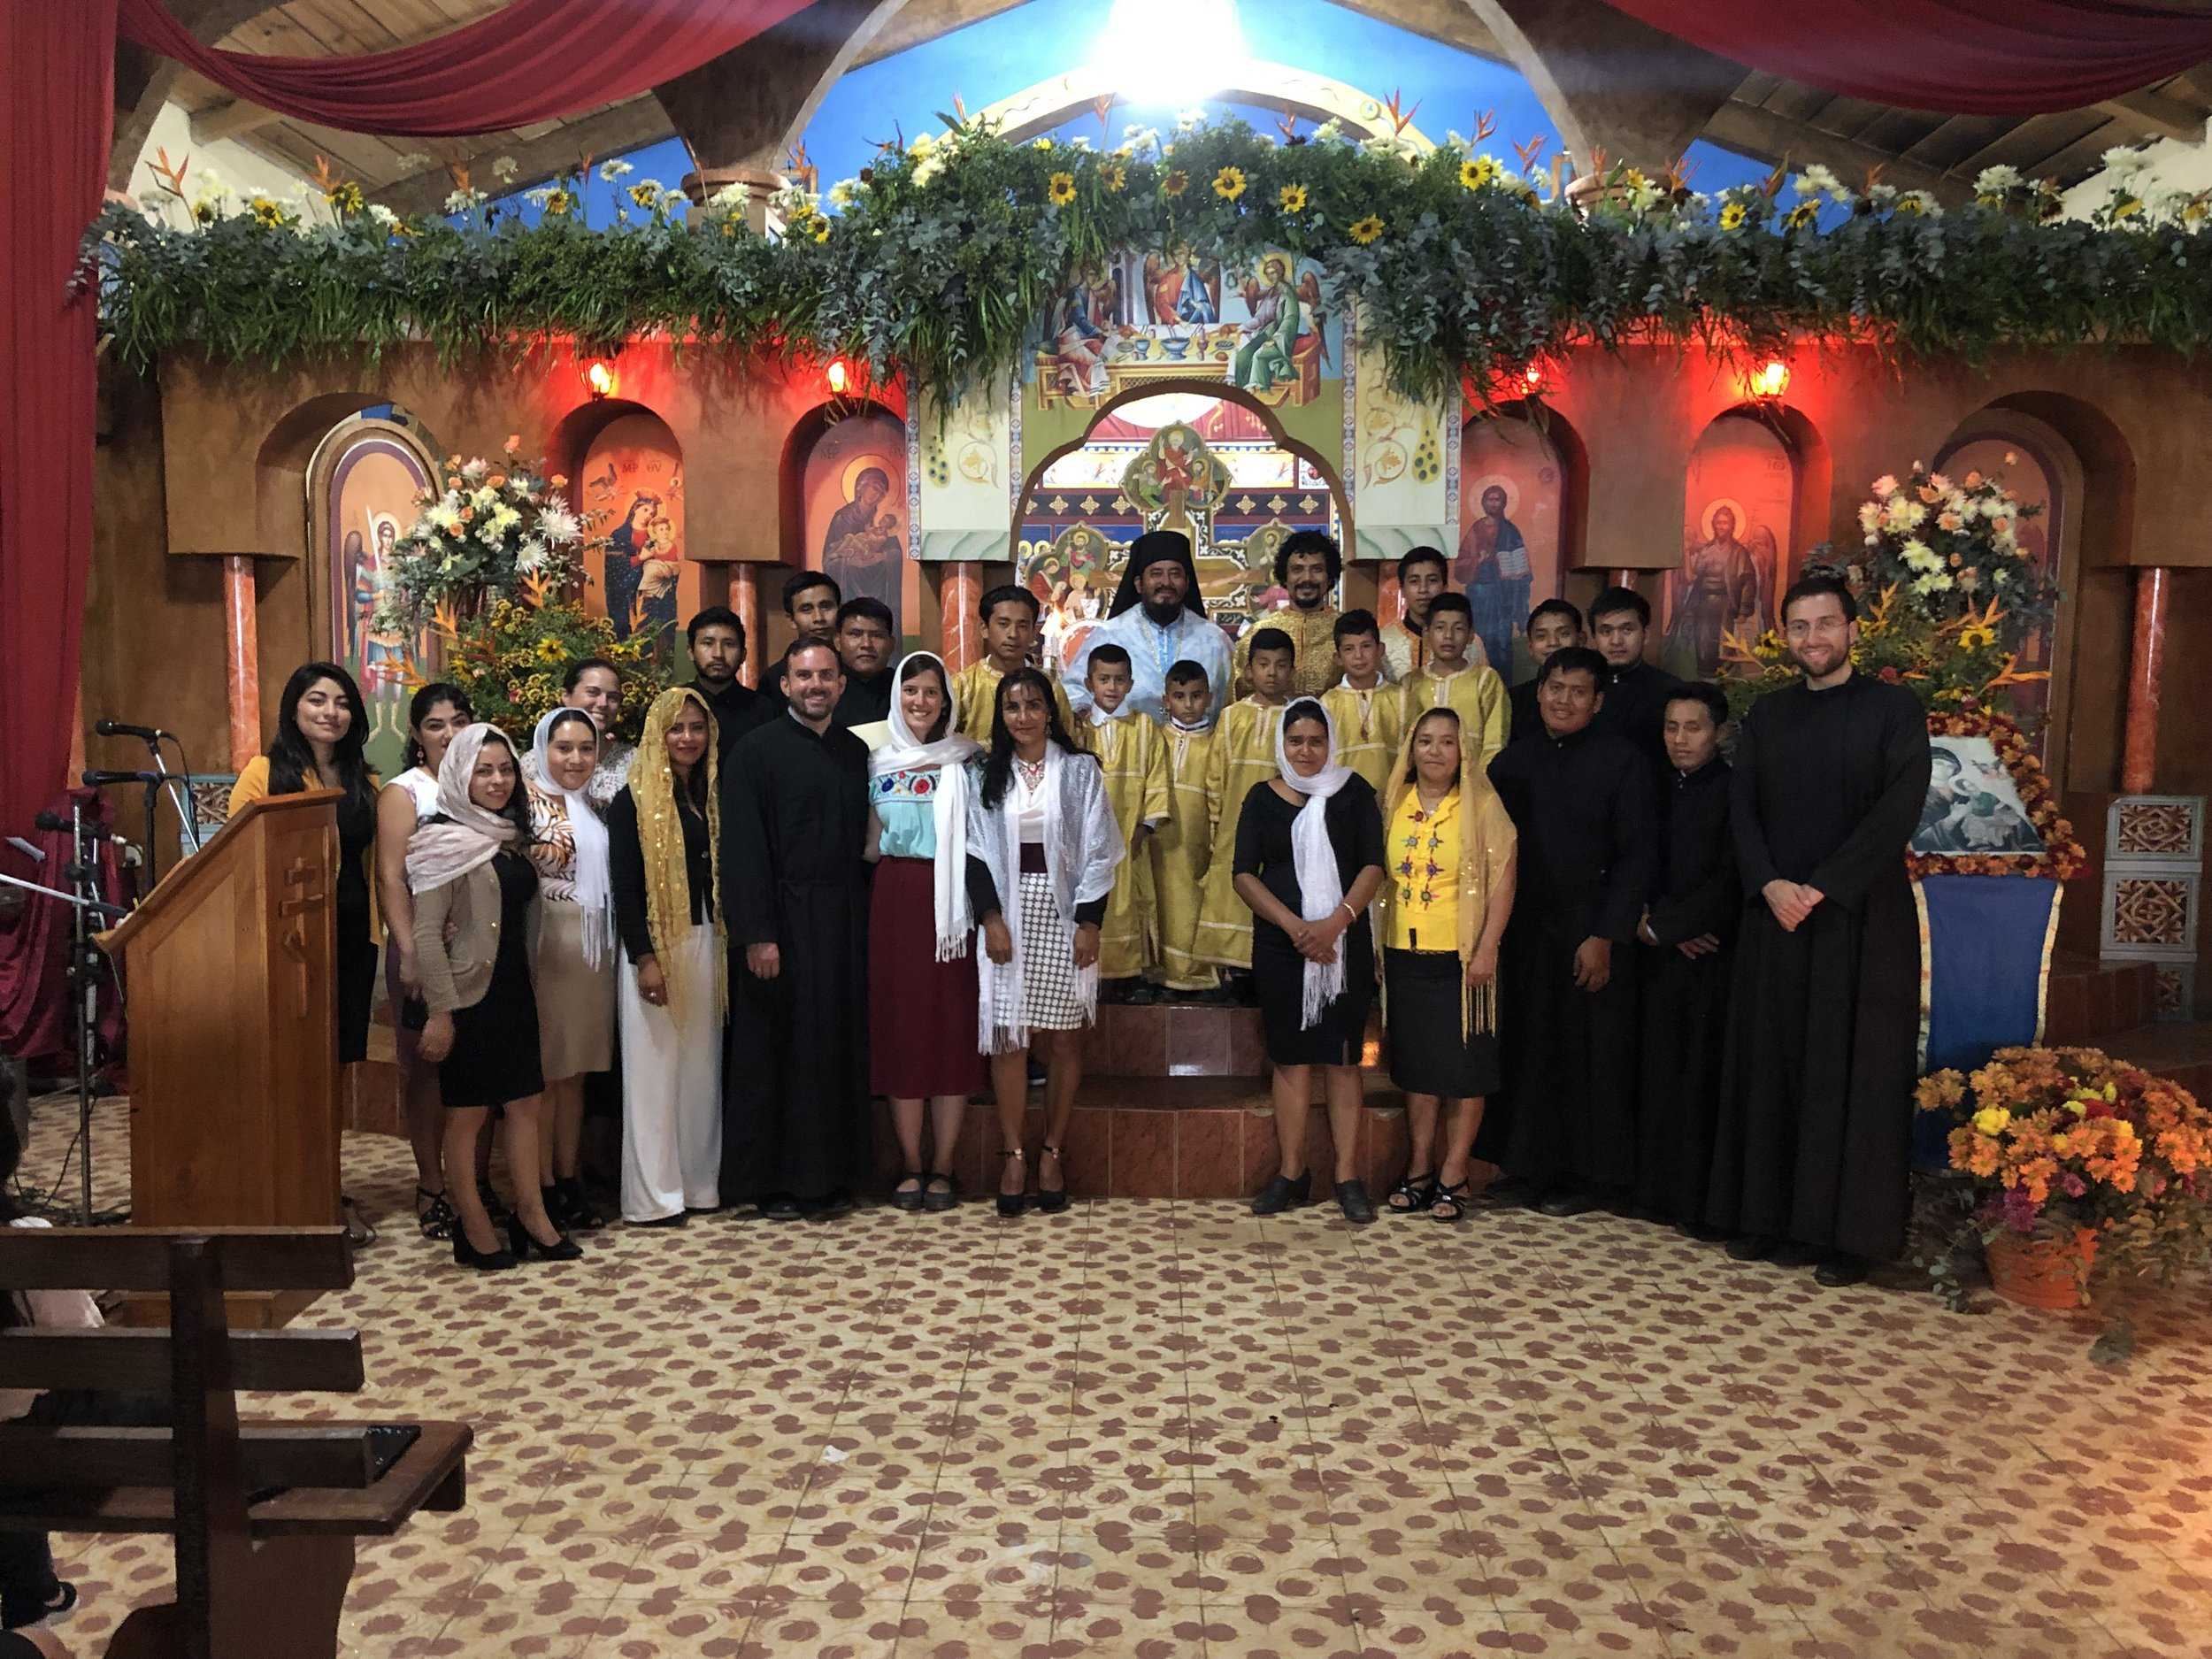 Parish visit to the community of the Most Holy Theotokos of Perpetual Help, where Fr. Alexios serves in Tajumuco. Their feast was celebrated along with many baptisms and chrismations!